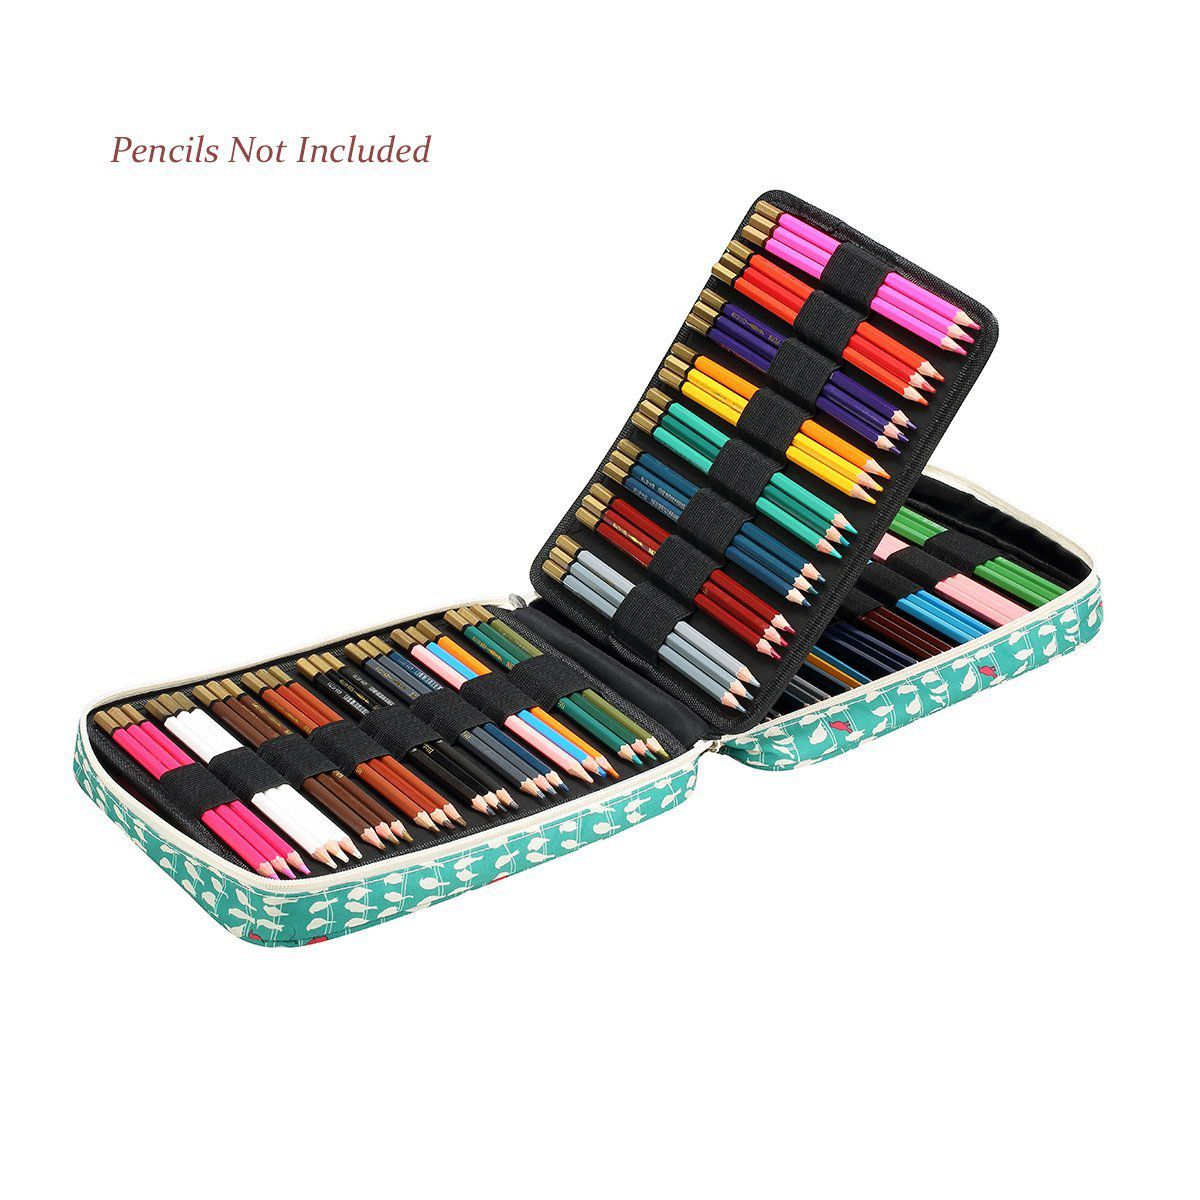 hot-150 Slots Colored Pencils Universal Pencil Bag Pen Case School Stationery PencilCase Drawing Painting Storage Pouch Pencilhot-150 Slots Colored Pencils Universal Pencil Bag Pen Case School Stationery PencilCase Drawing Painting Storage Pouch Pencil